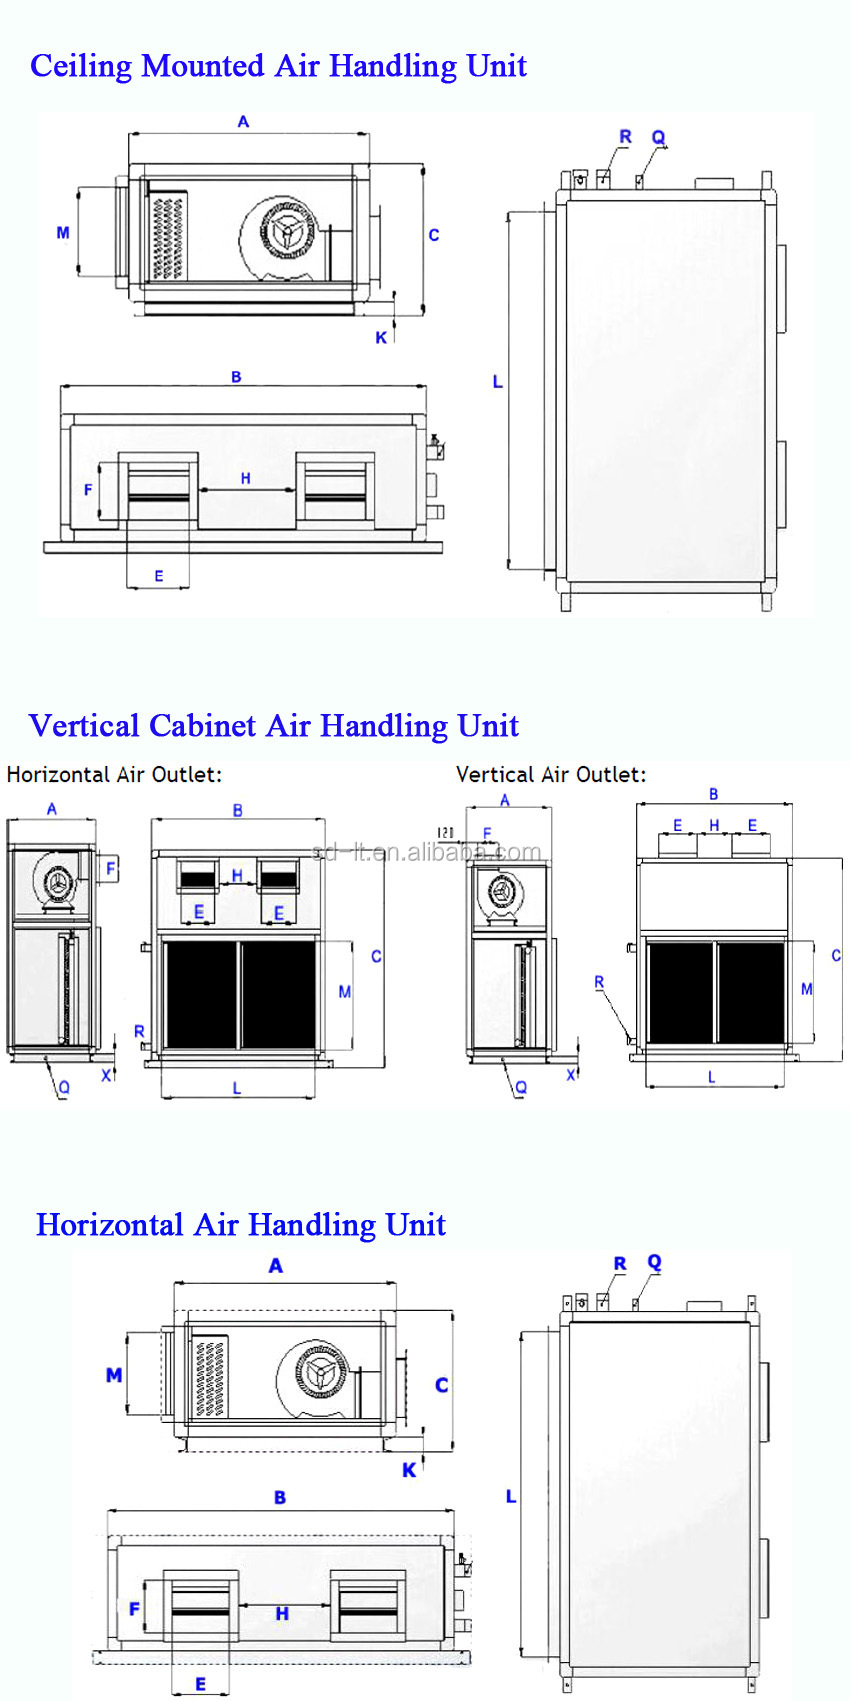 hight resolution of 40 air flow rate 103 m3 h remarks vertical air handling units